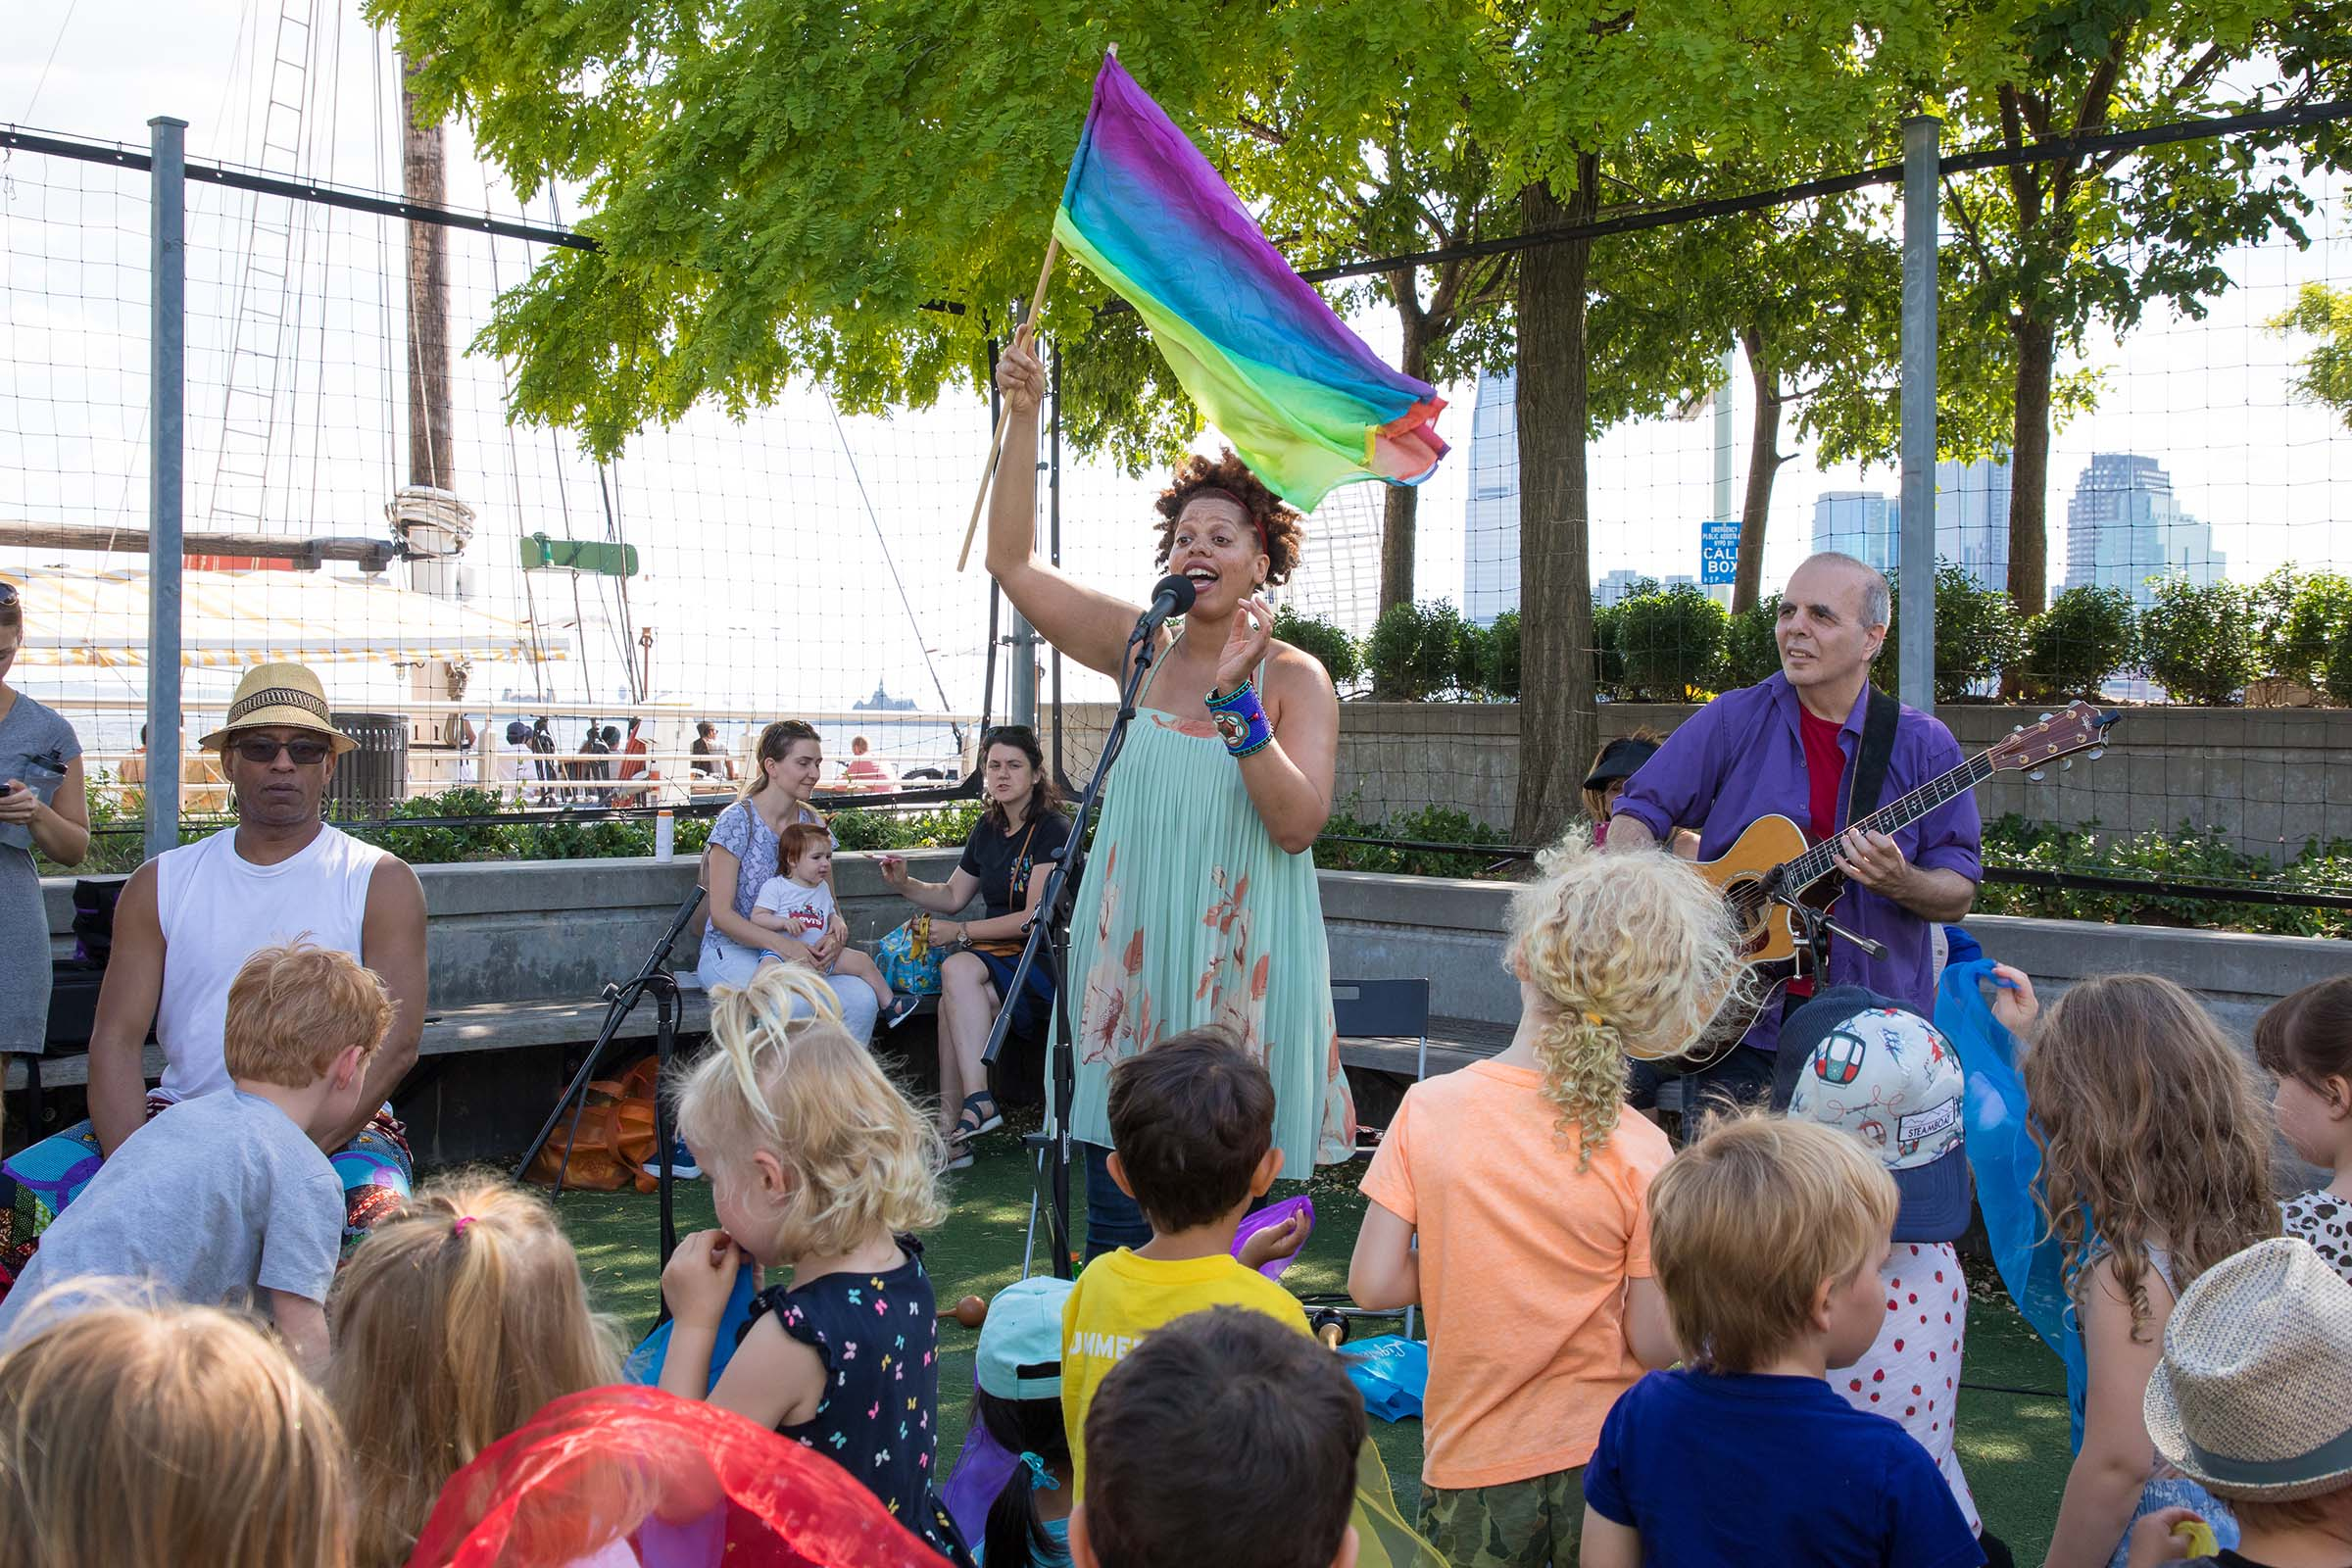 A rainbow flag is waving by the singer at RiverKids